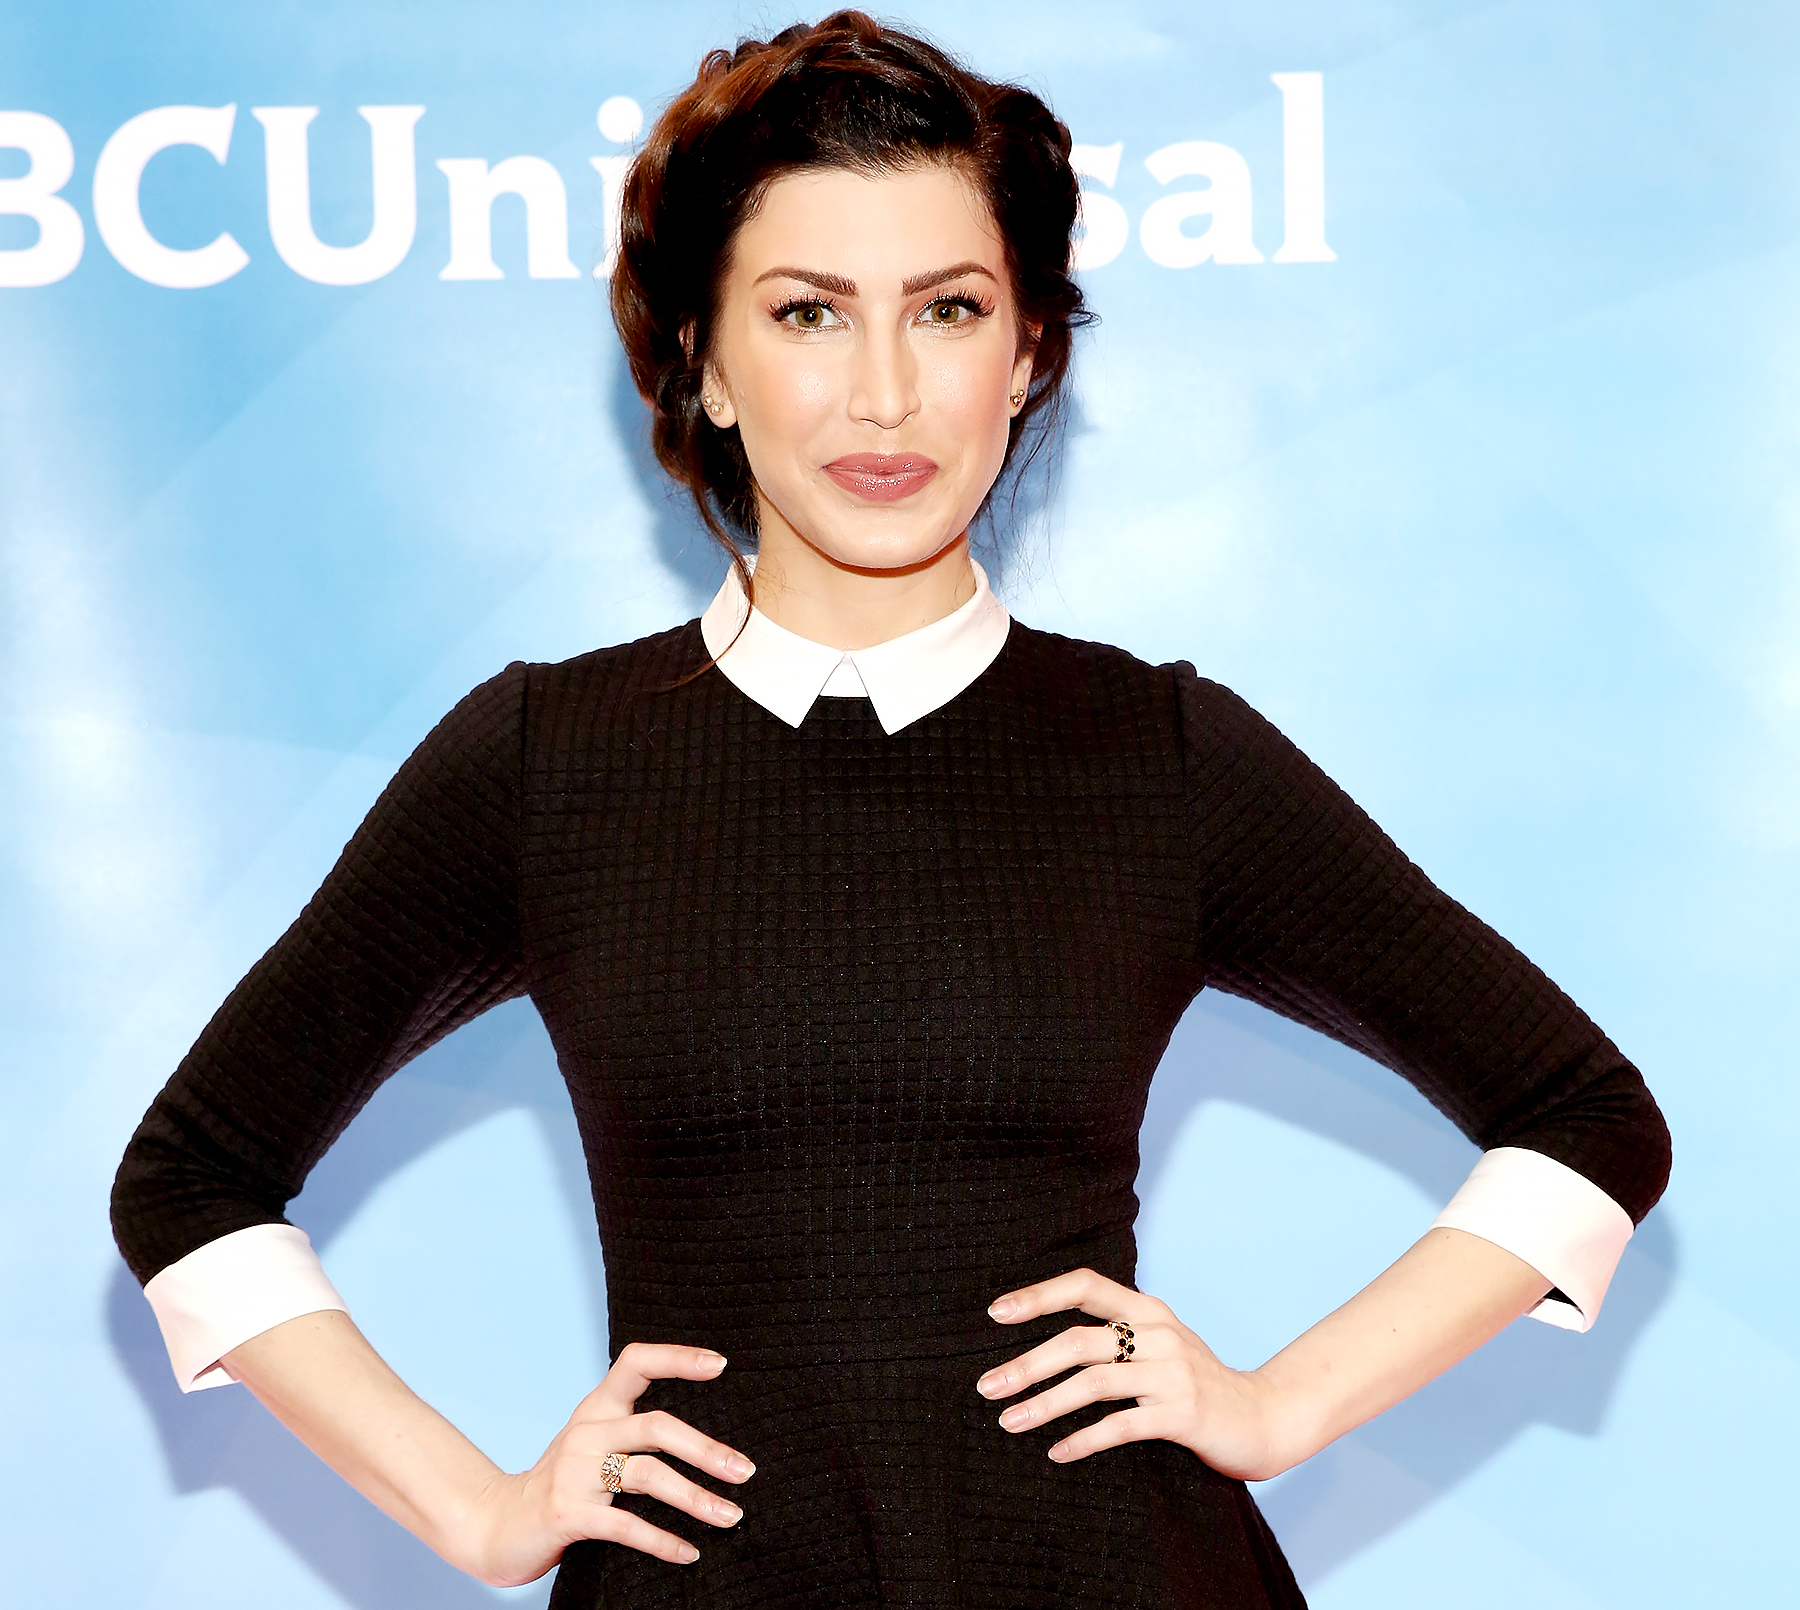 Stevie Ryan attends the 2015 NBC New York Summer Press Day at Four Seasons Hotel in New York City on June 24, 2015.